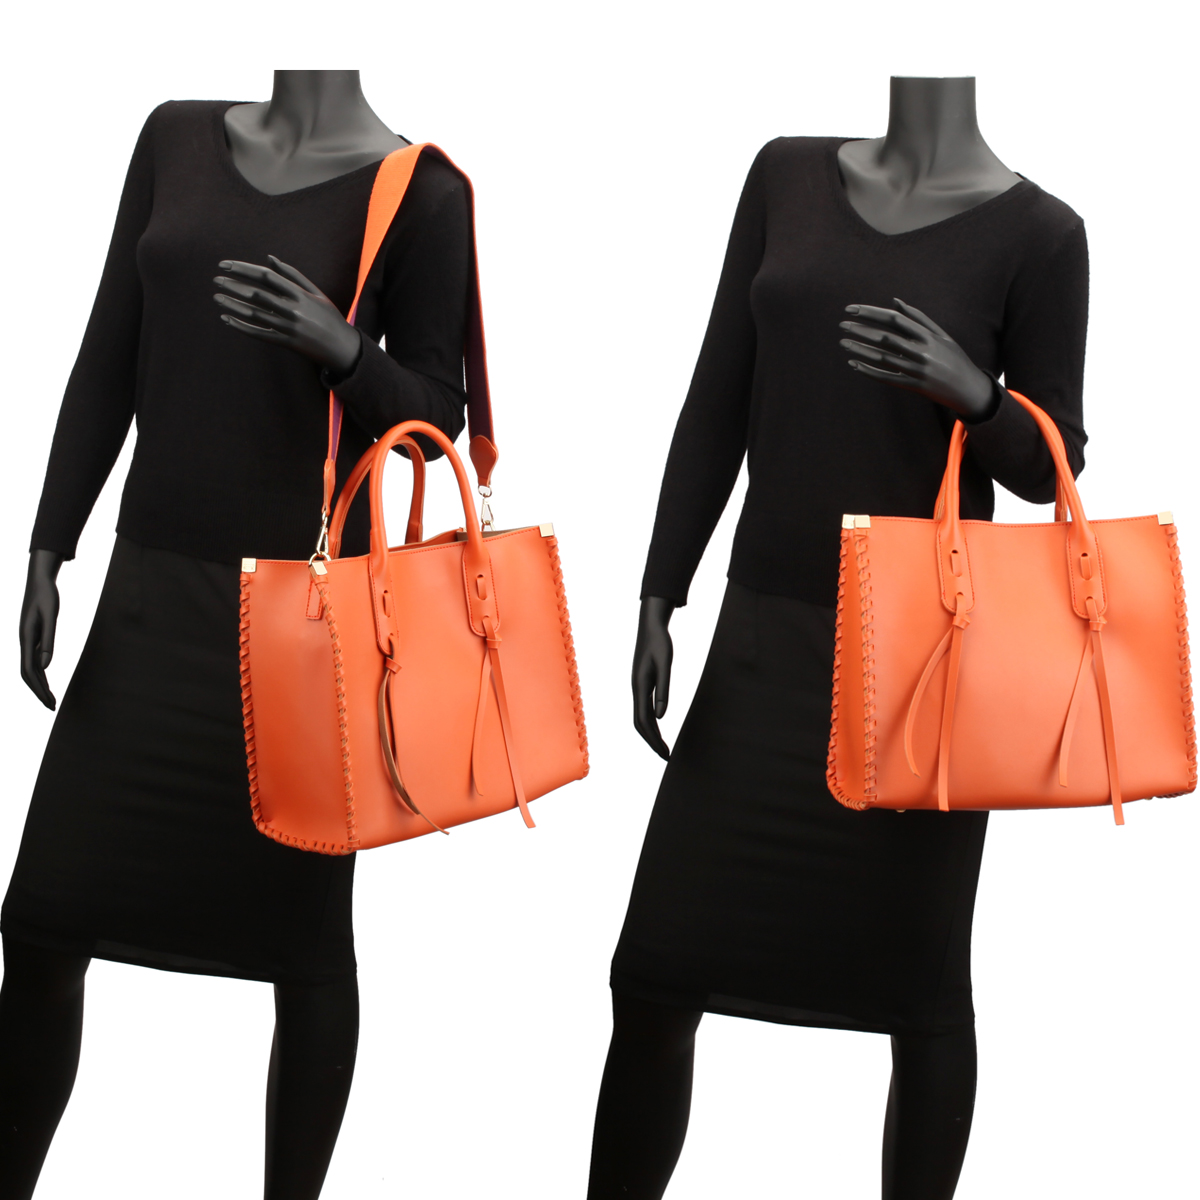 Medium Satchel with Decorative Side Stitch, Hanging Tassels and Matching Inner Pouch